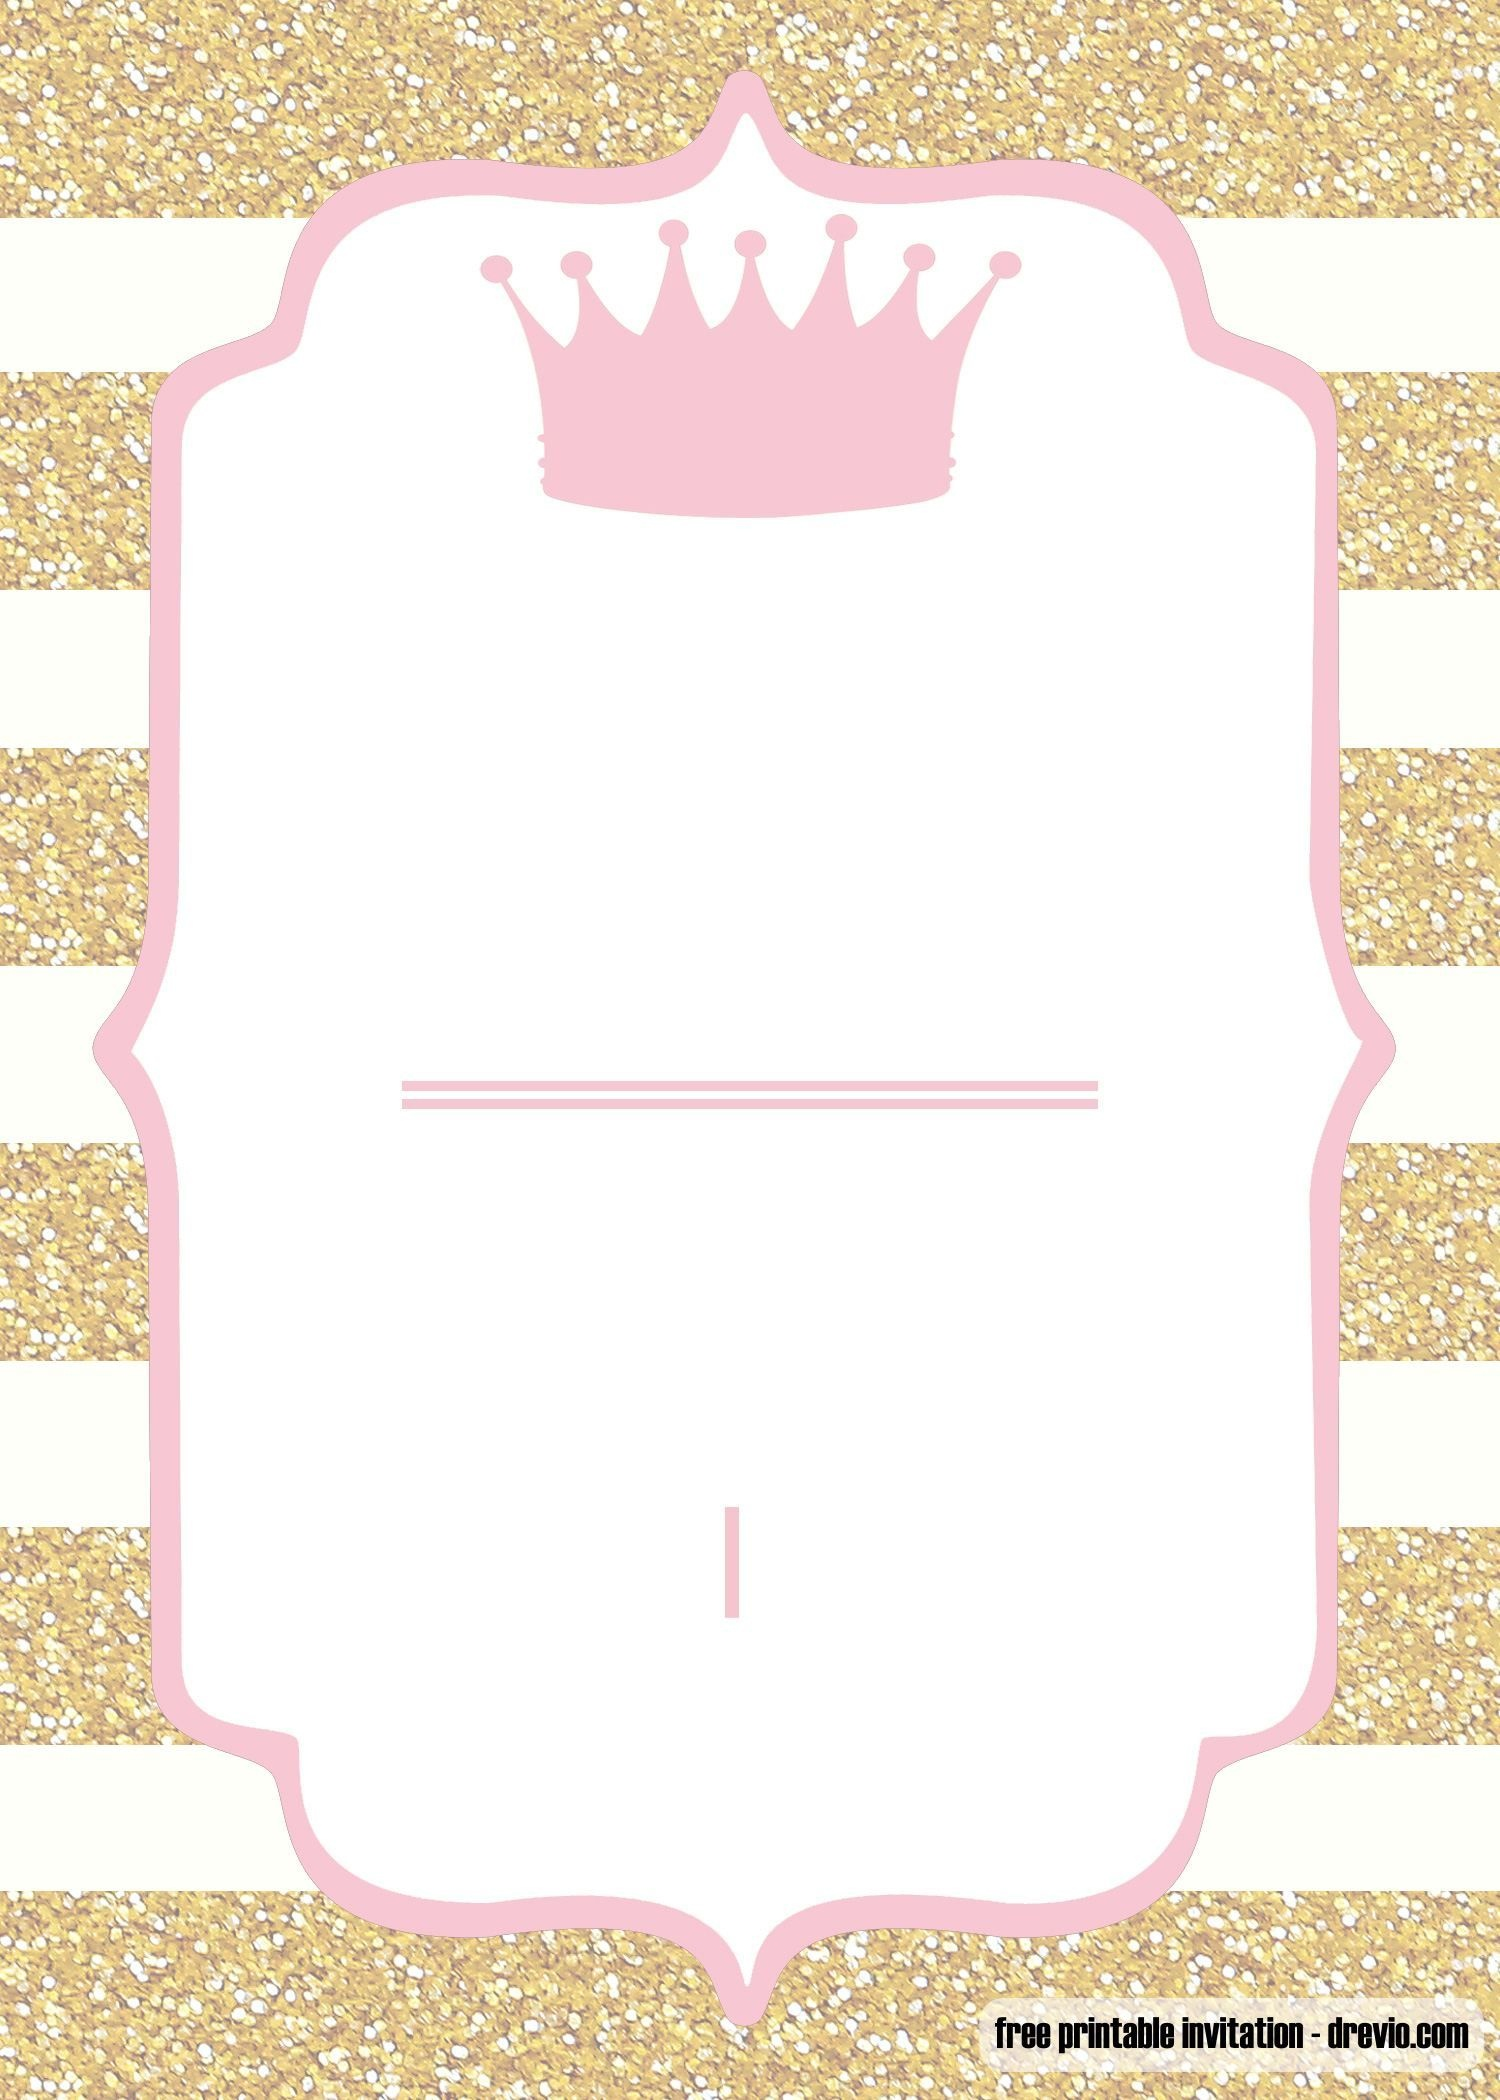 Free Printable Pink And Gold Baby Shower Invitation | Baby - Free Printable Princess Baby Shower Invitations